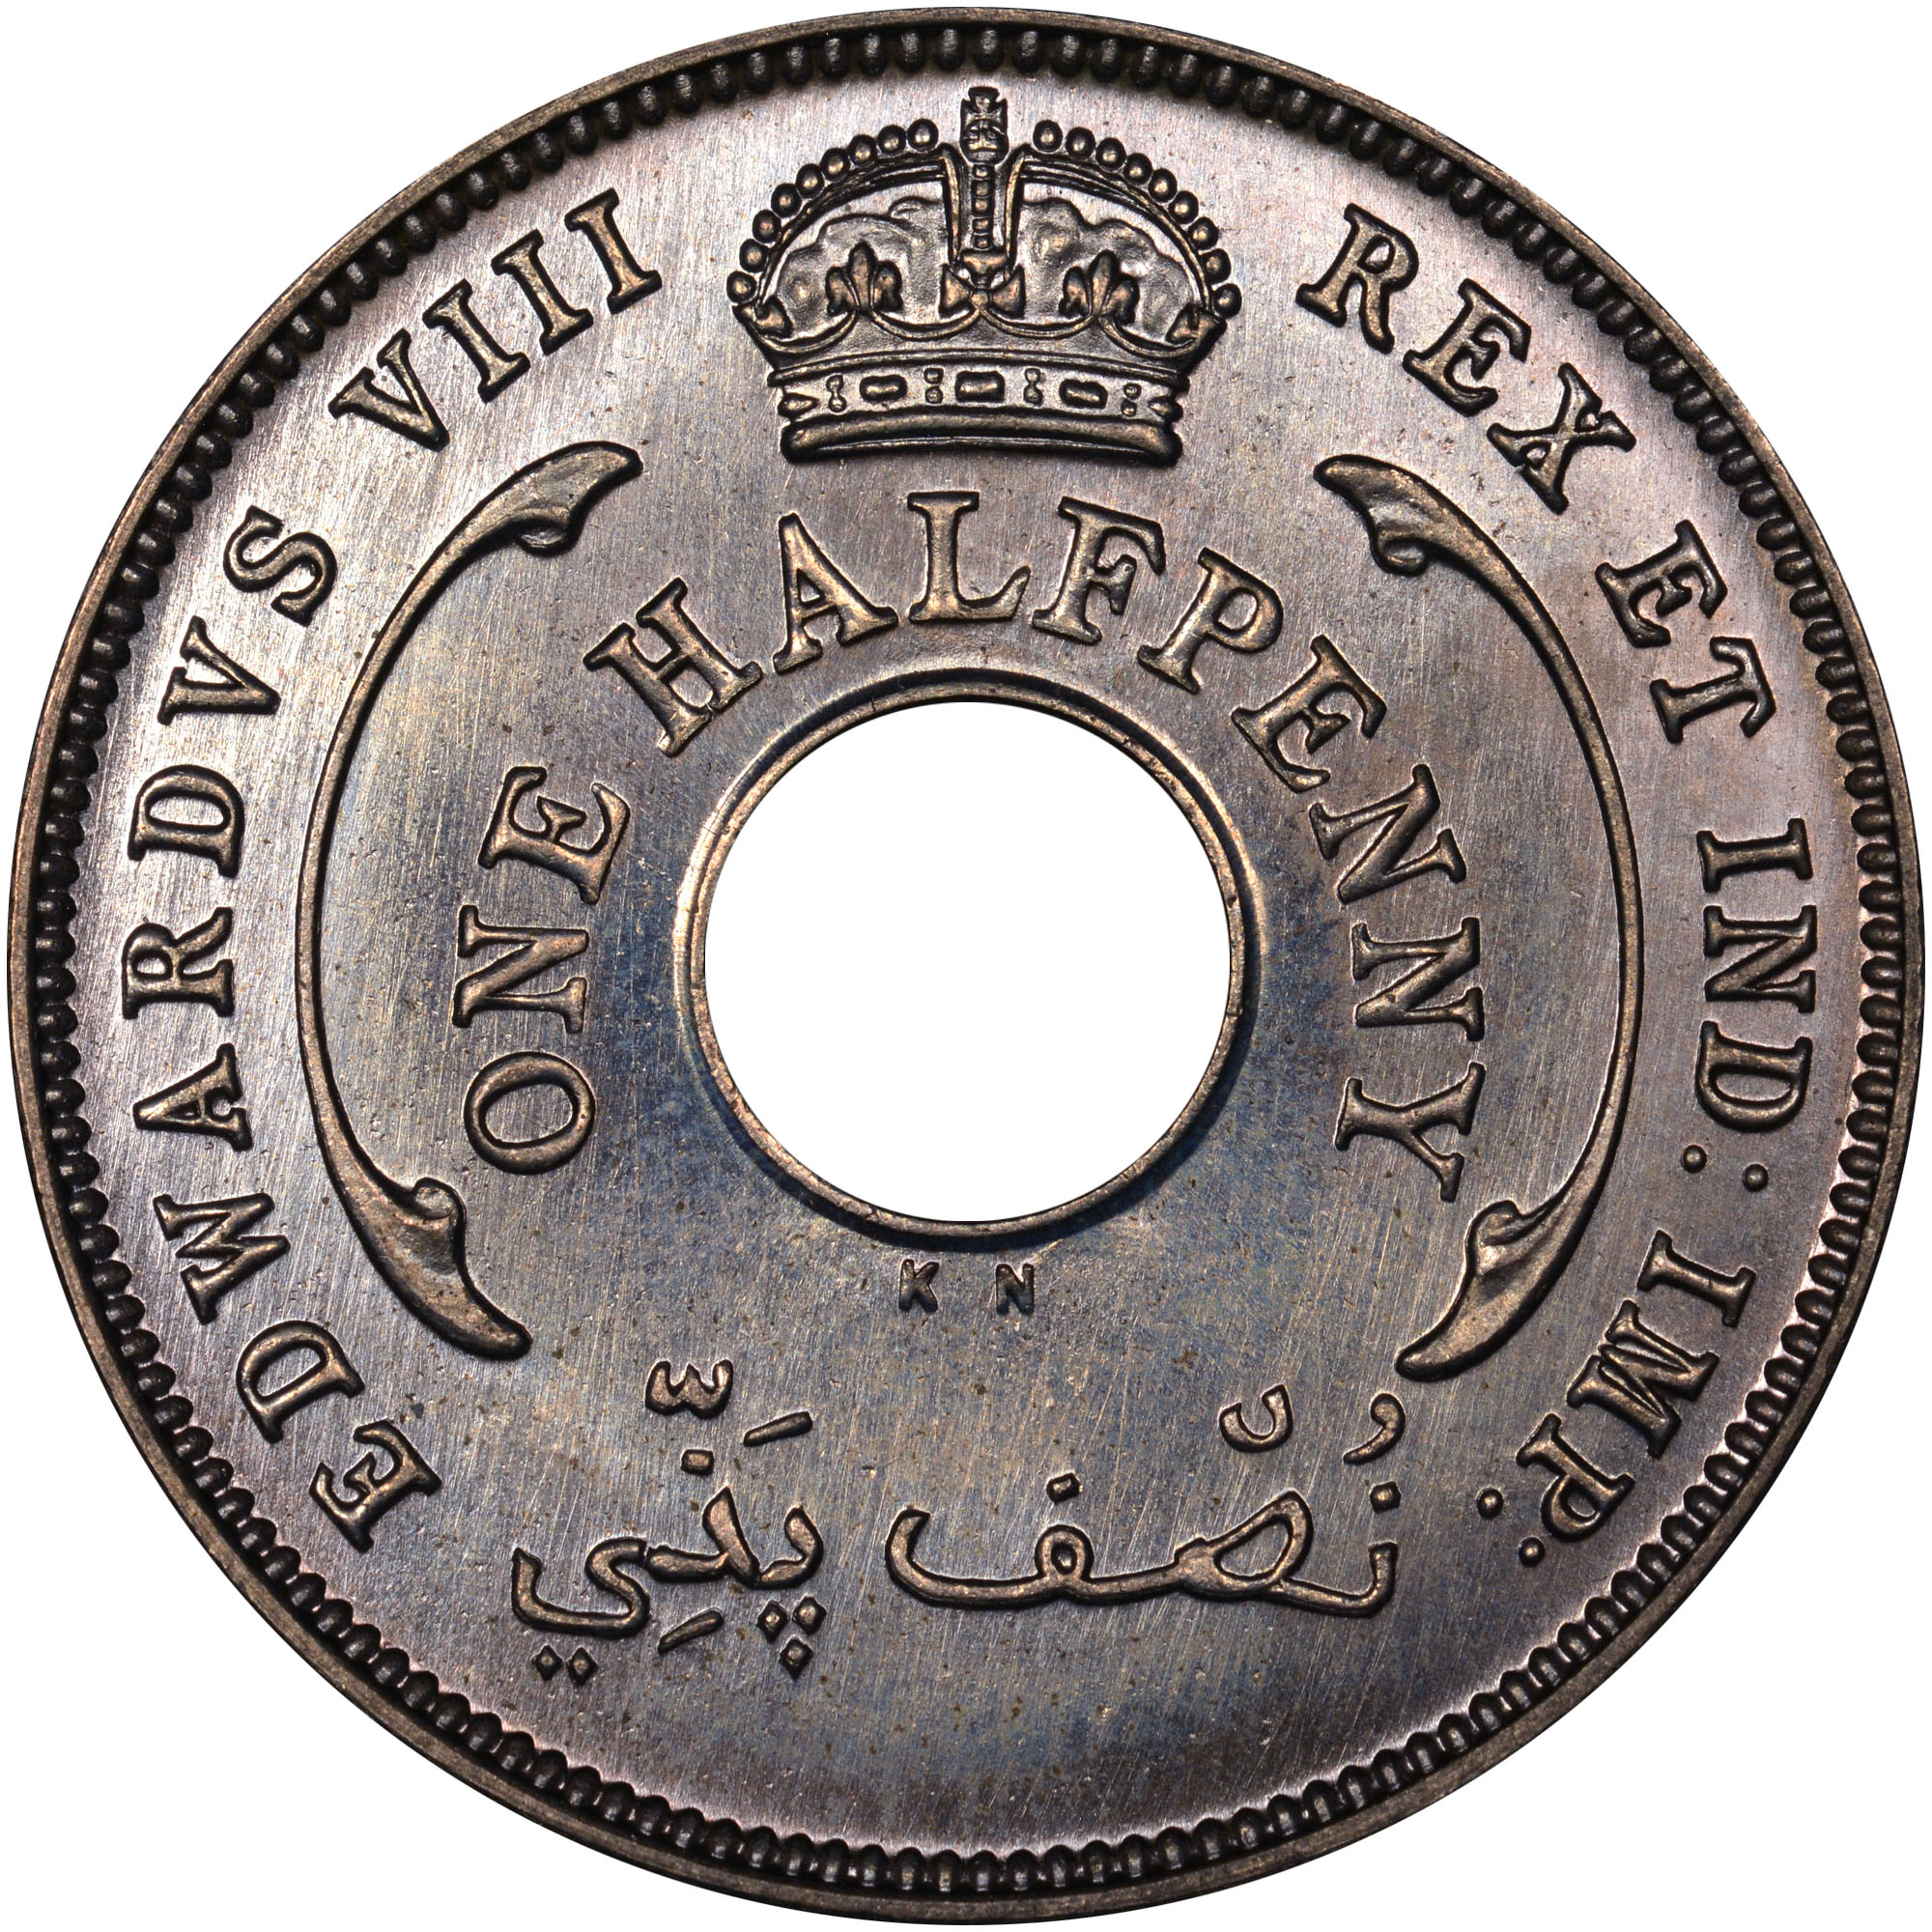 1936 British West Africa 1/2 Penny obverse